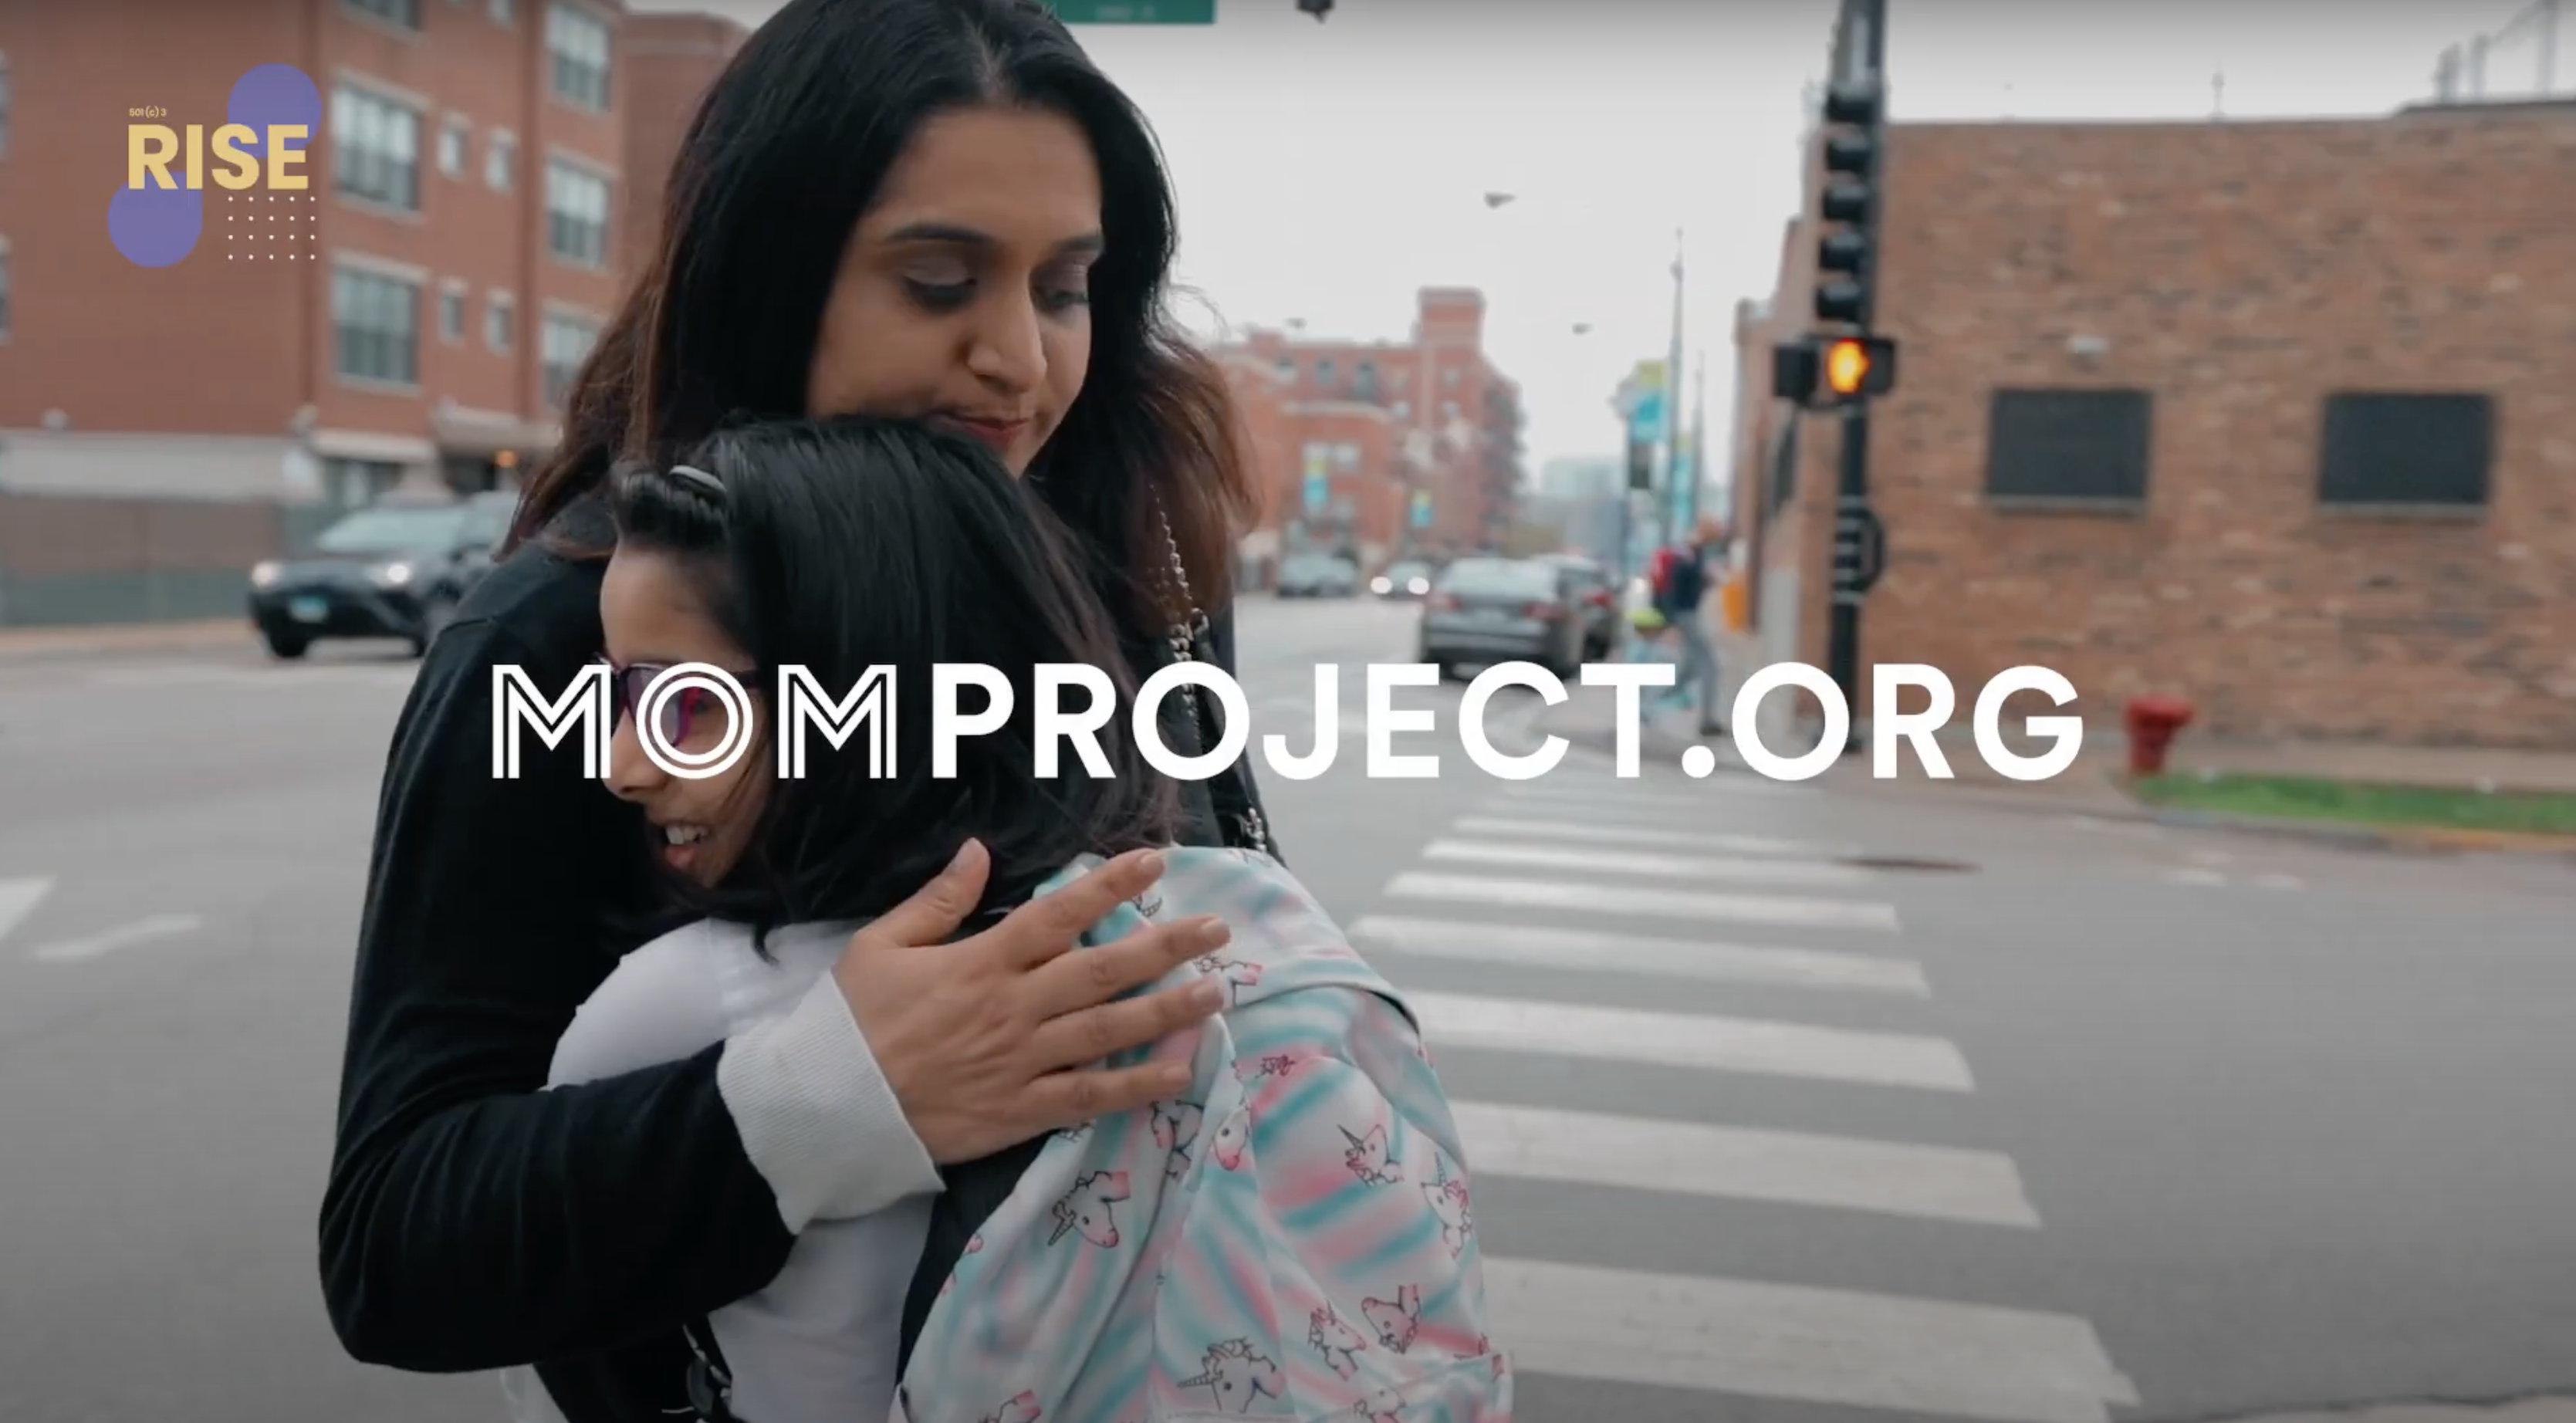 Momproject.org video